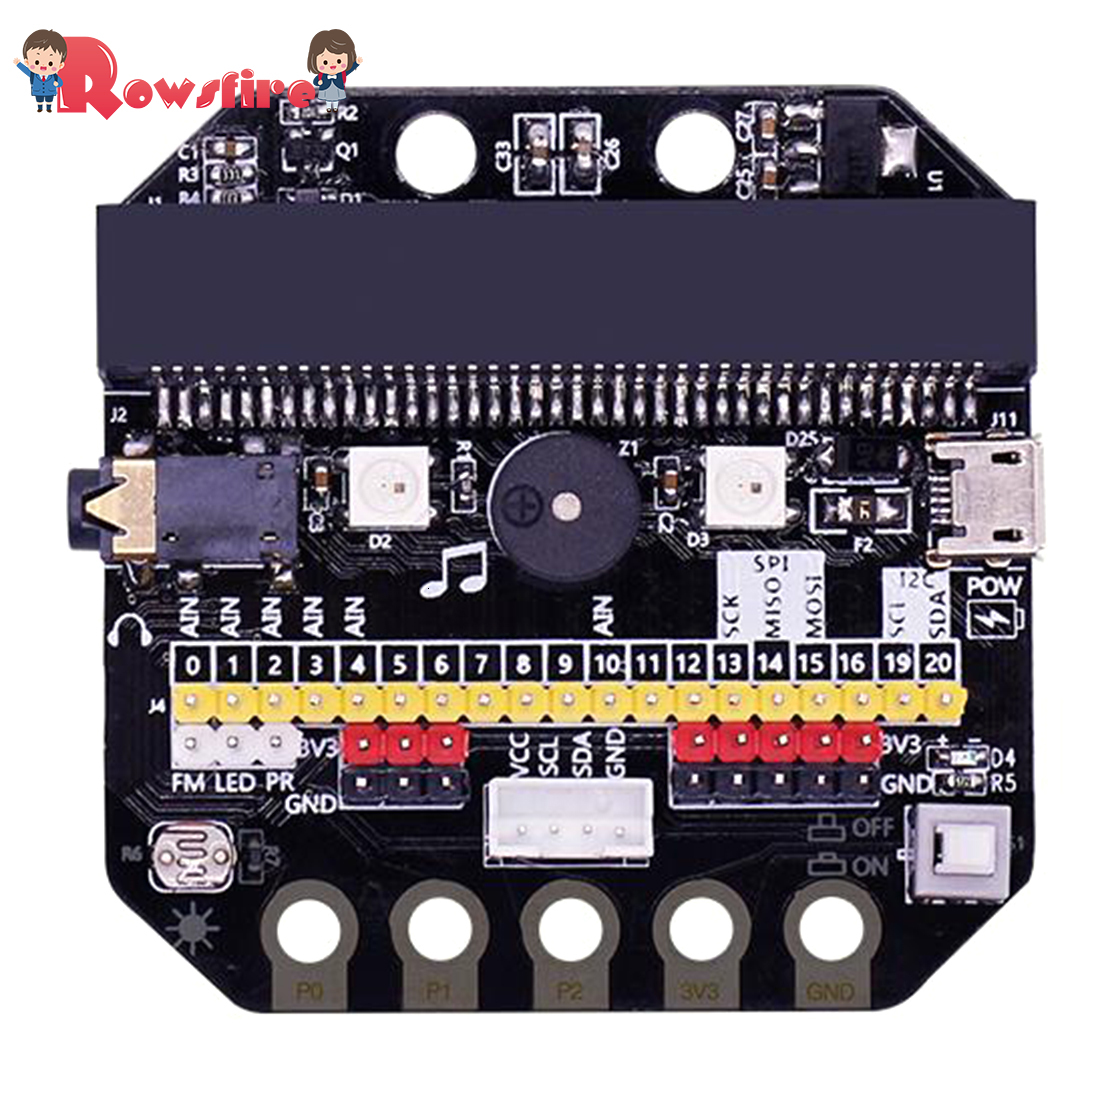 High Quality 1 Set Basic:Bit IO Expansion Board Horizontal Type Pinboard Microbit Python Development Board For Micro:Bit